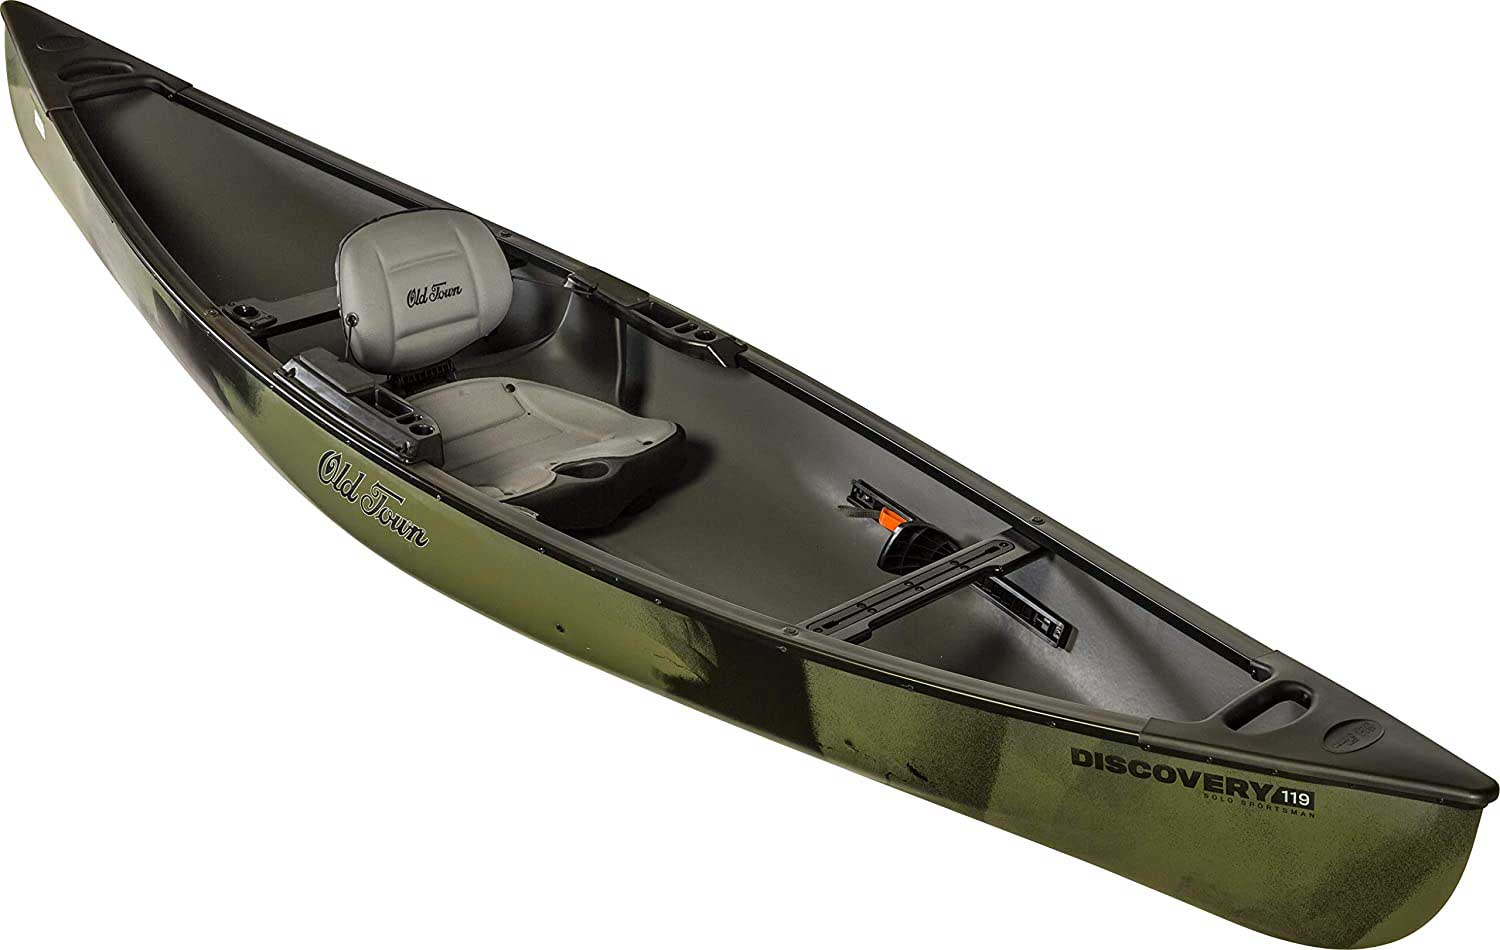 An Old Town Solo Sportsman canoe on a white background.